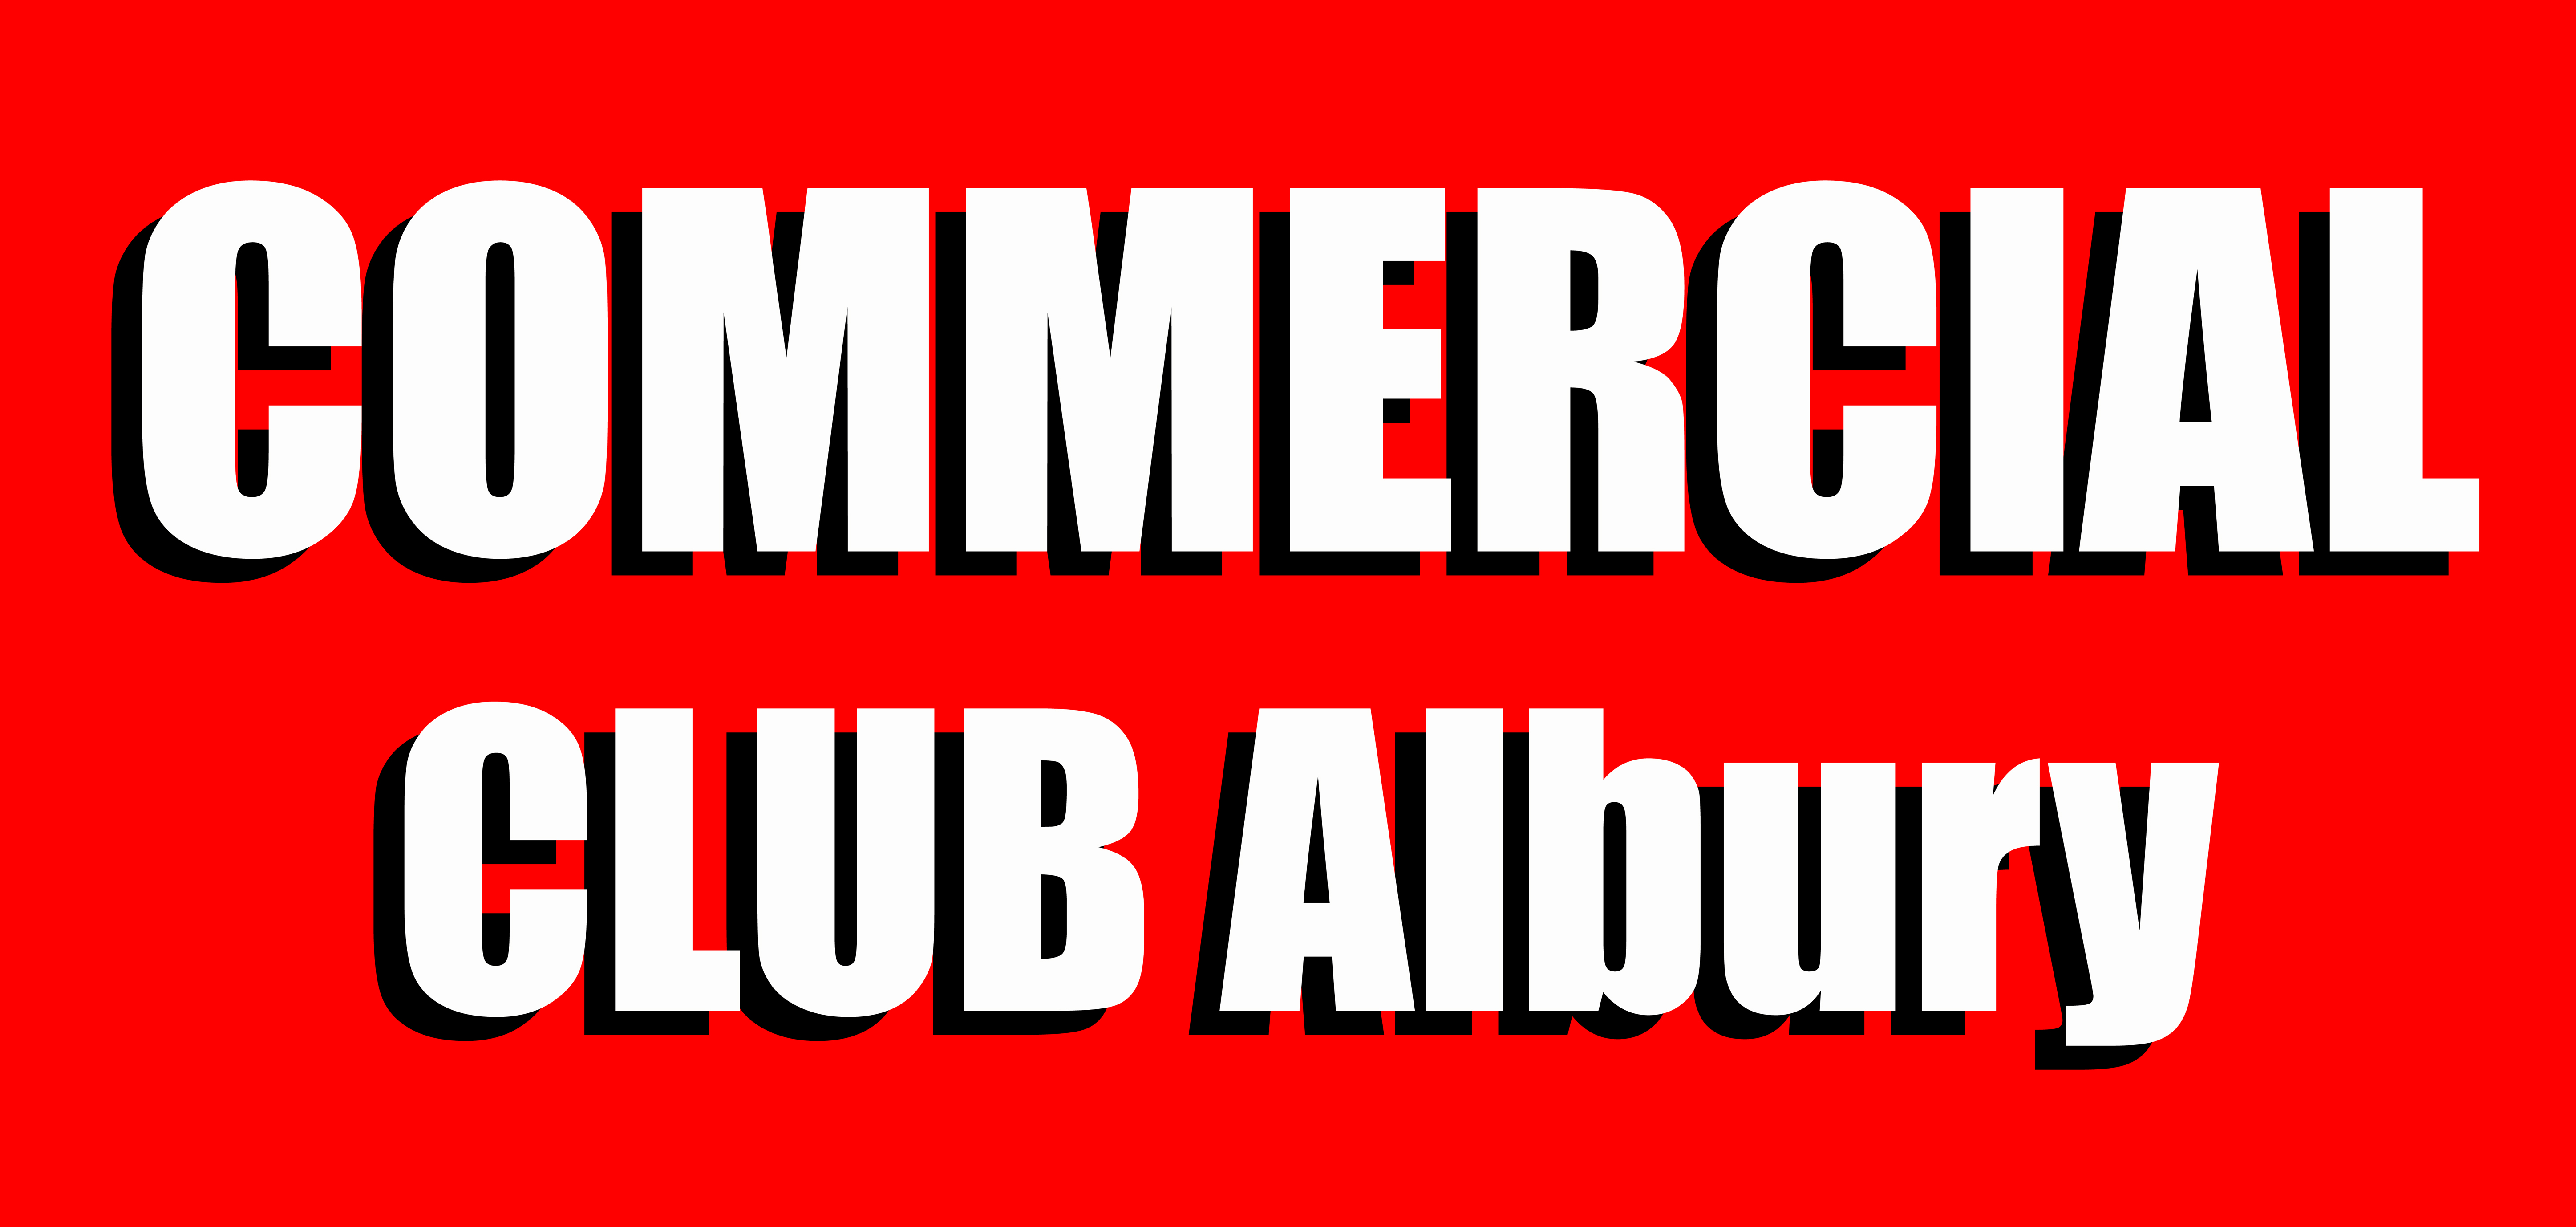 COMMERCIAL CLUB red backgroud logo